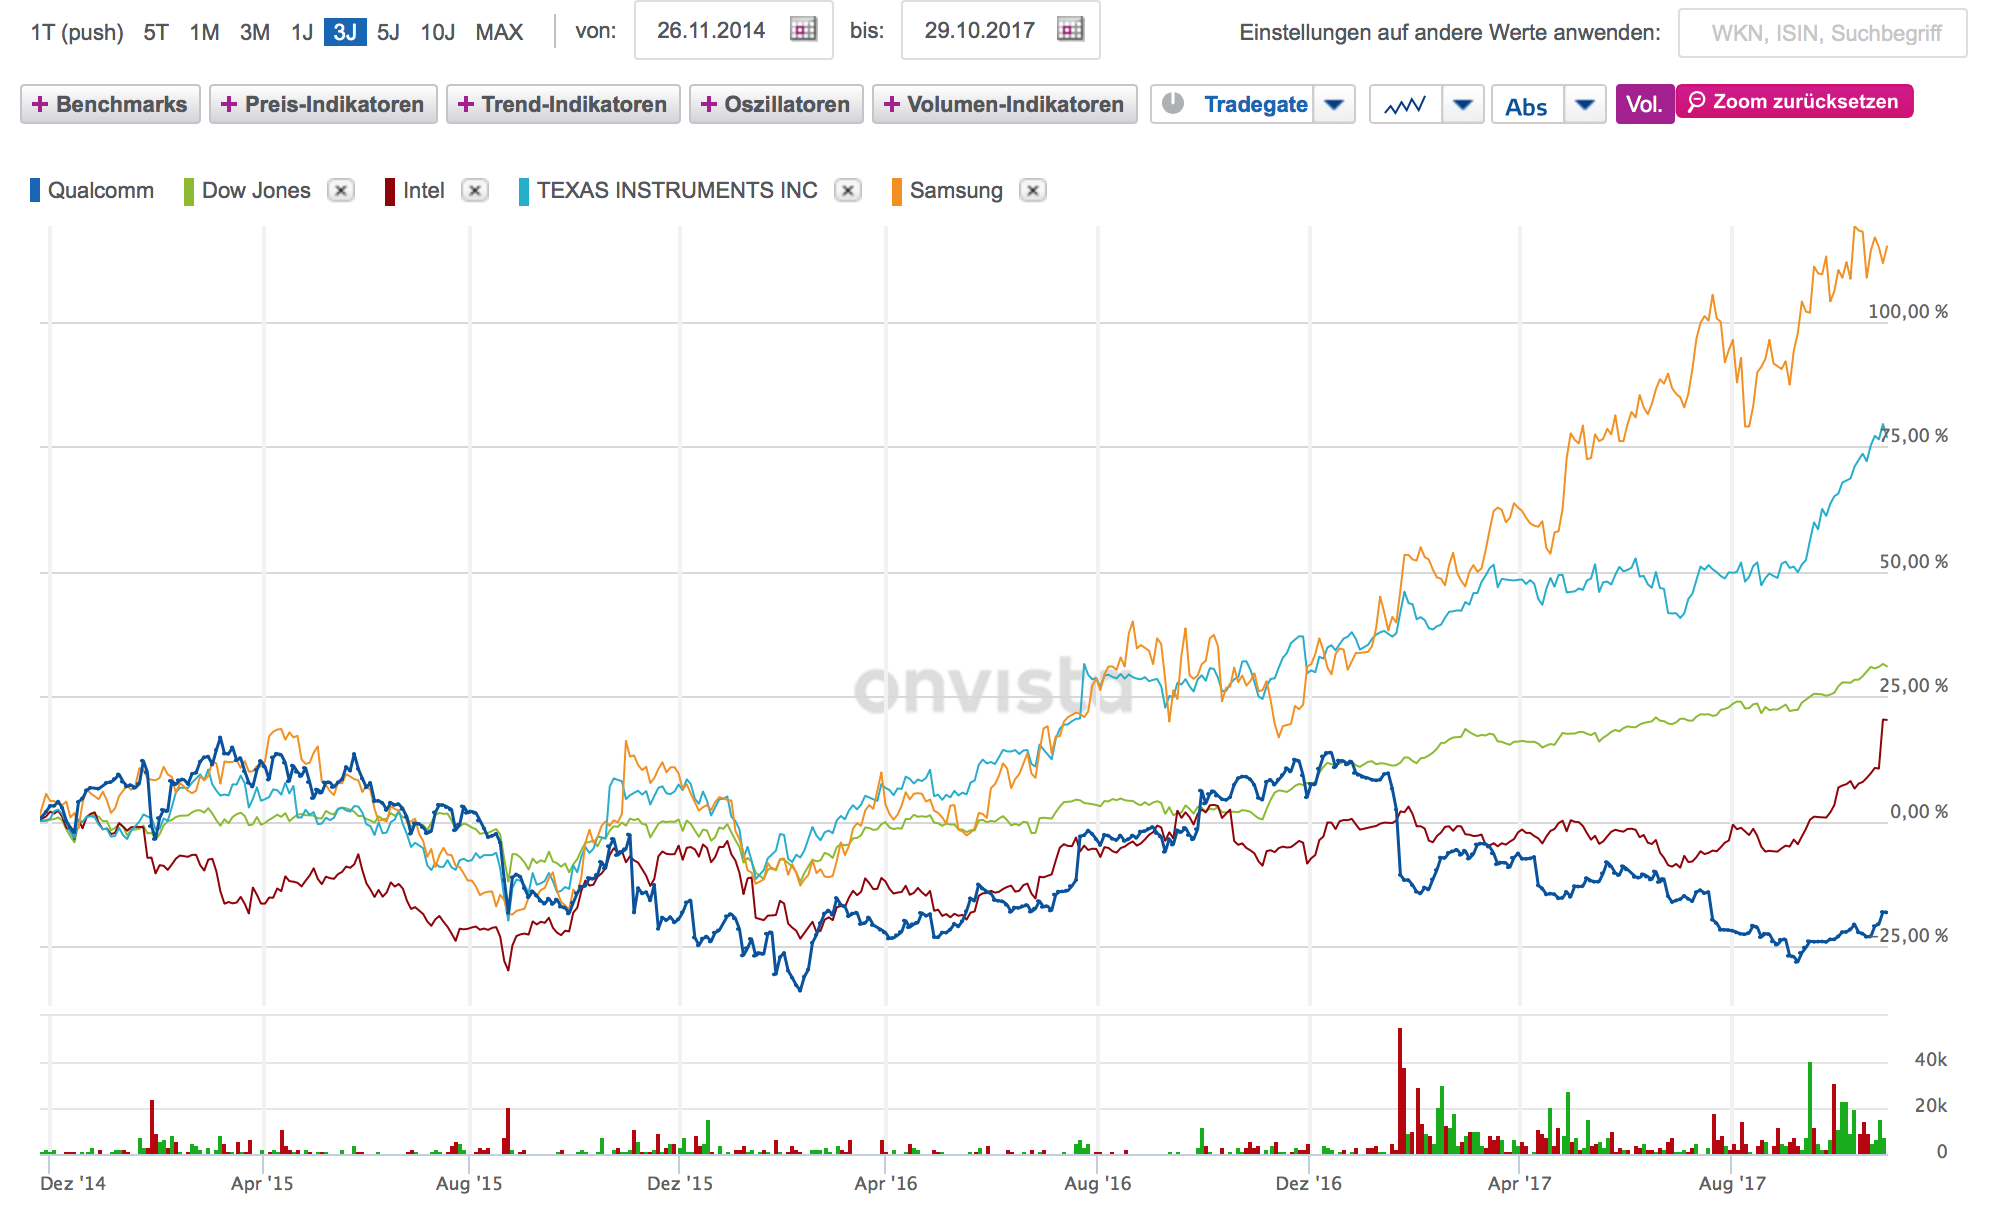 Qualcomm vs. Dow Jones and Peer Group